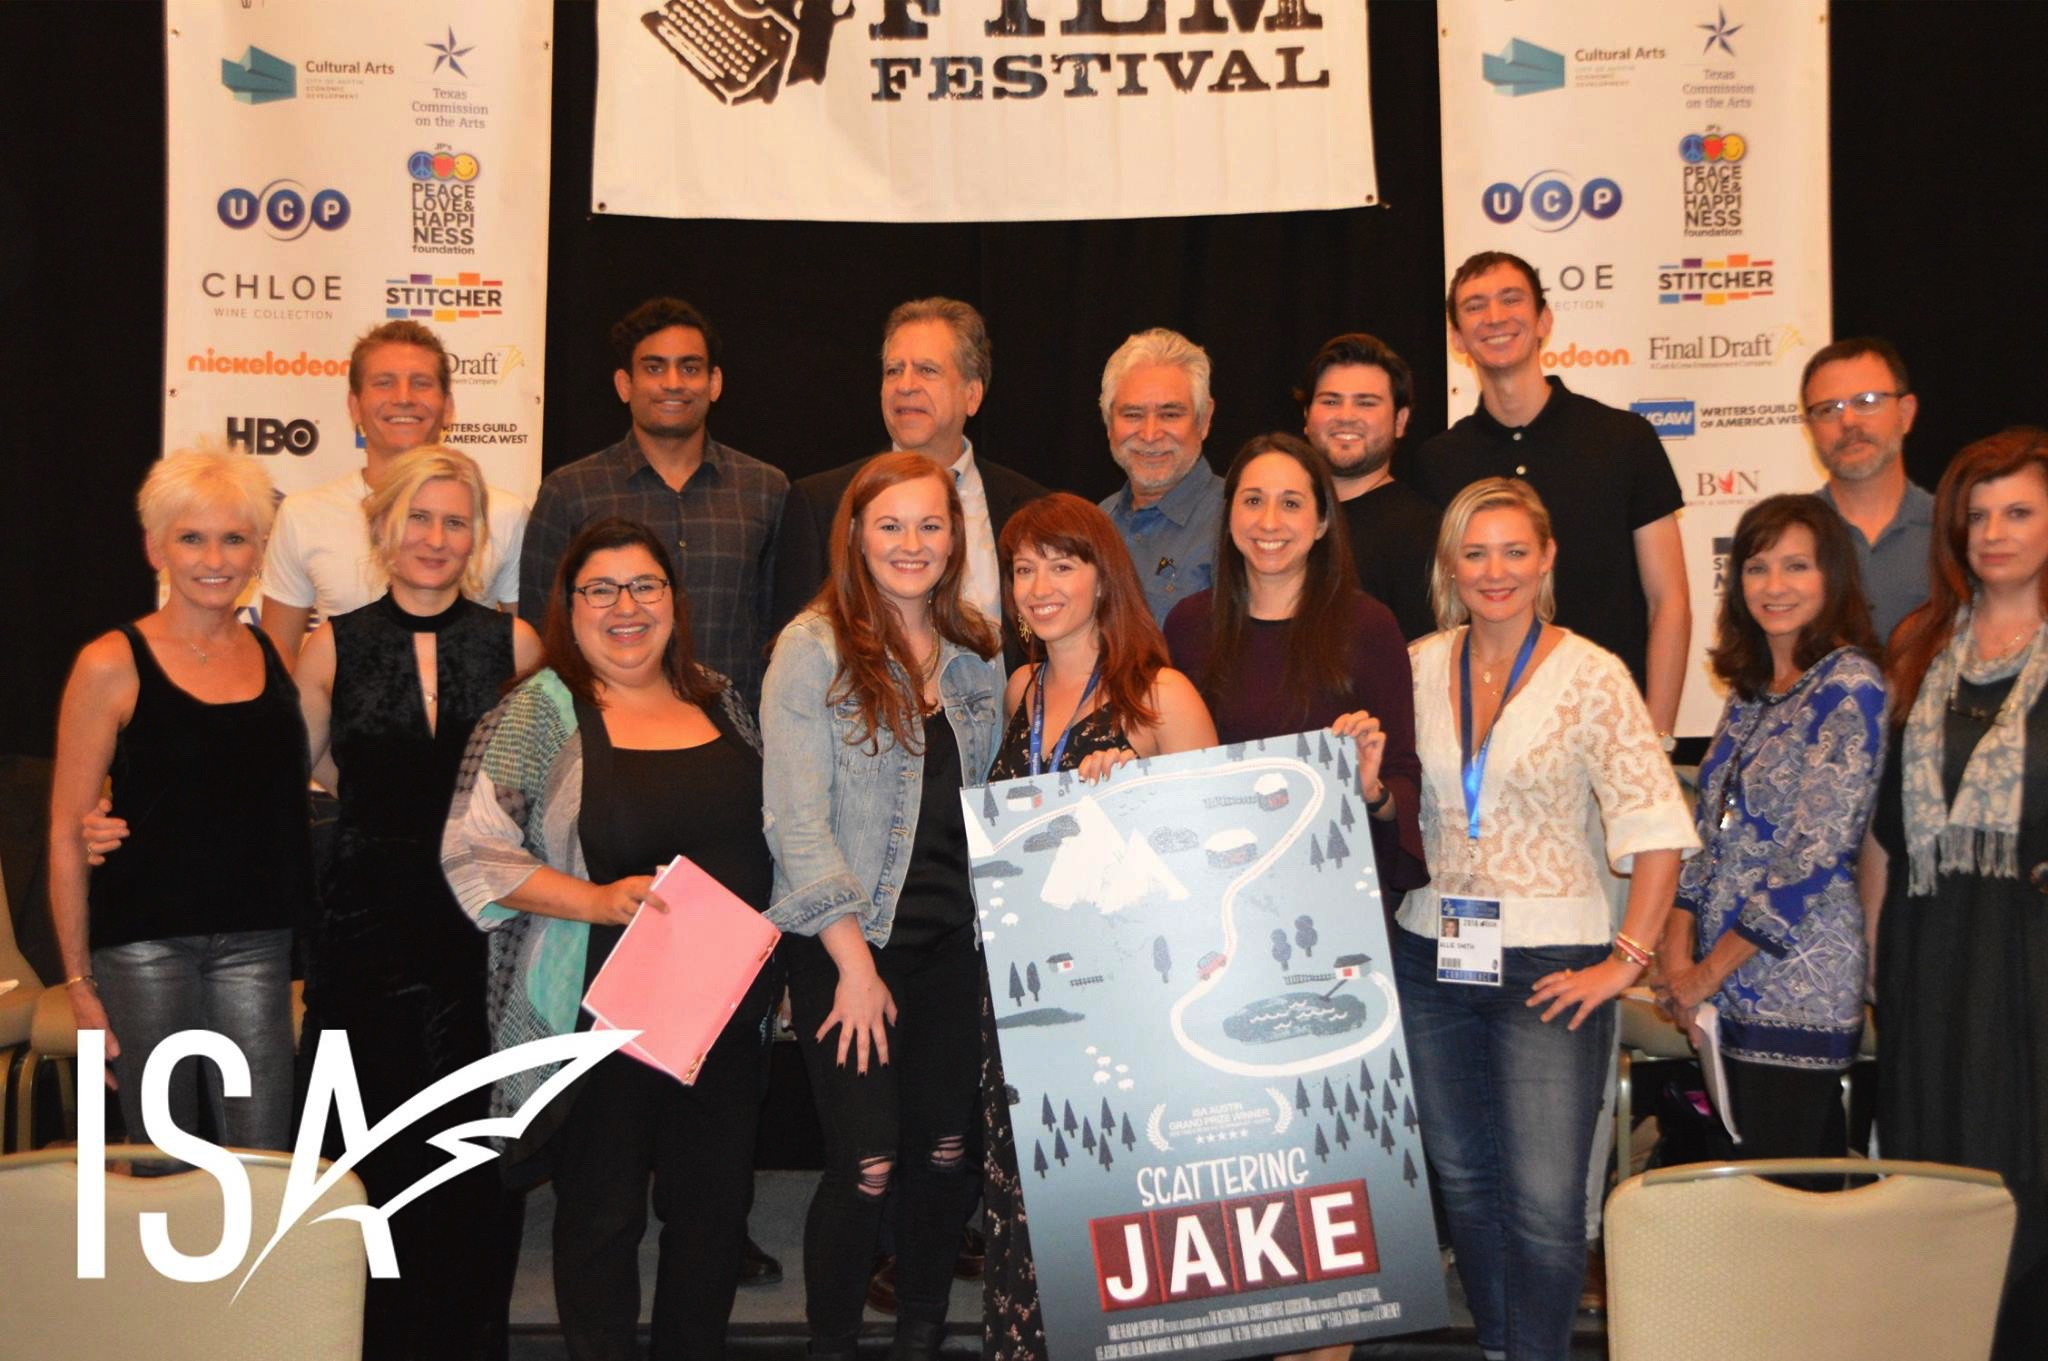 The fabulous  Scattering Jake  cast assembled by the Table Read My Screenplay contest!